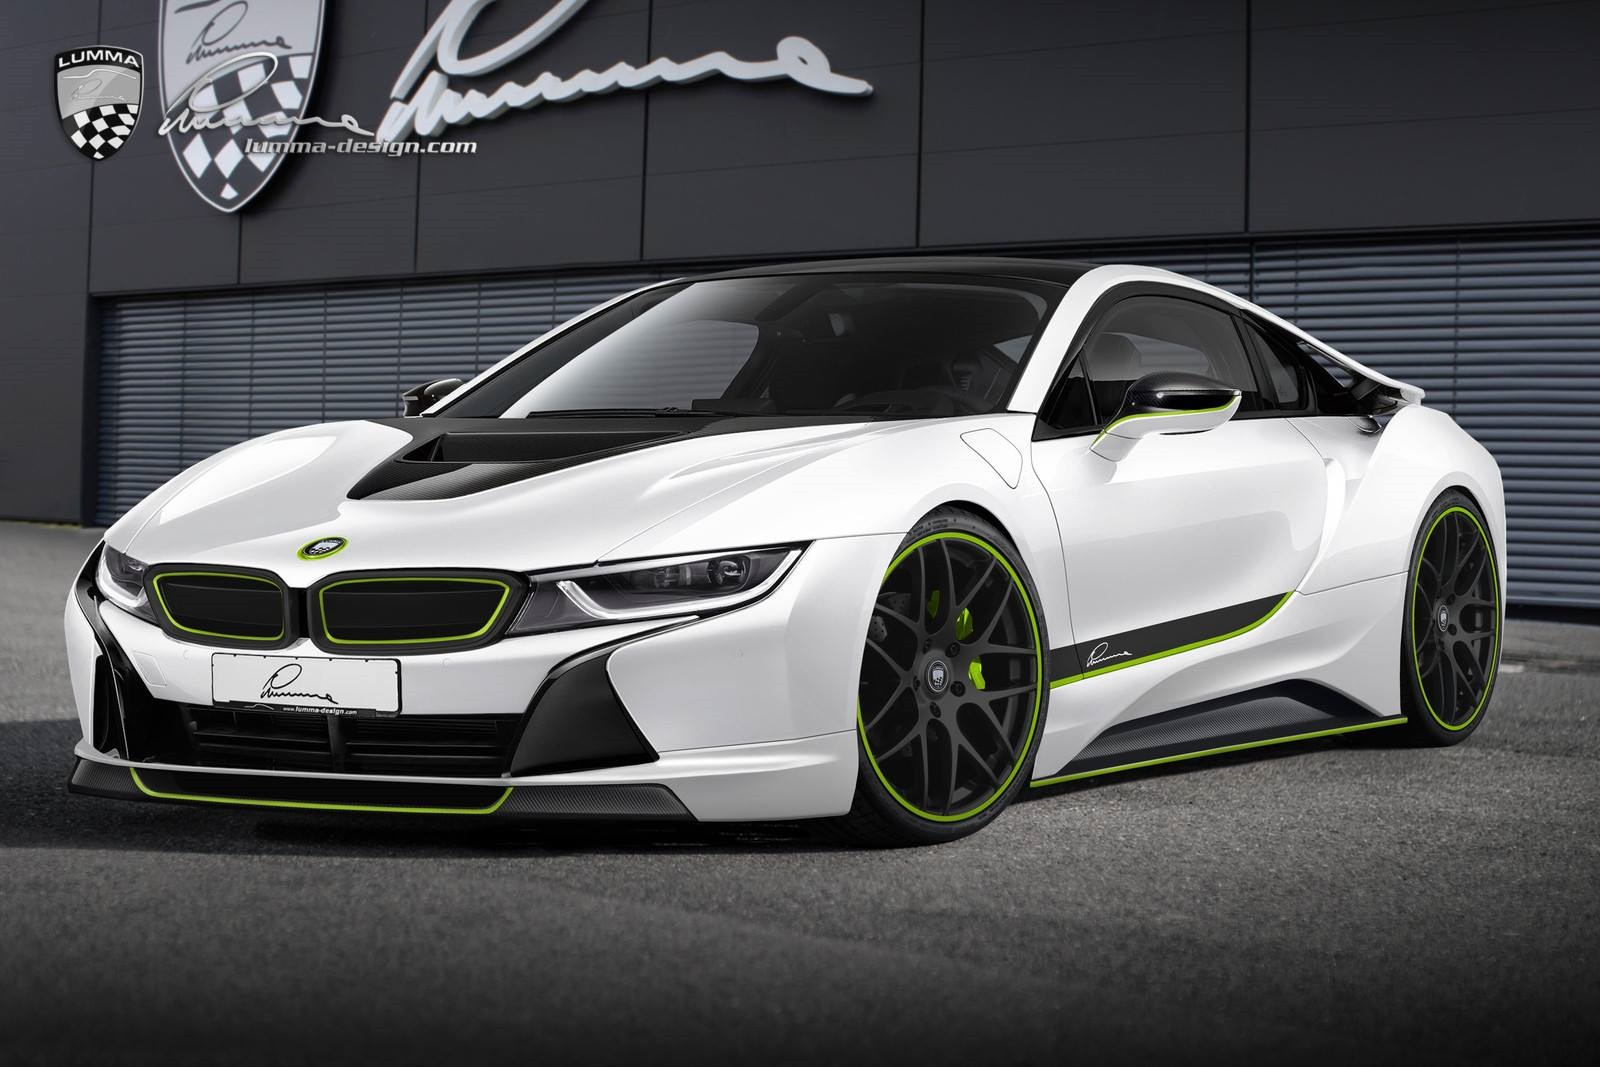 Lumma Design Draws Tuning Concepts For Bmw I8 Coupe And I3 Hatch